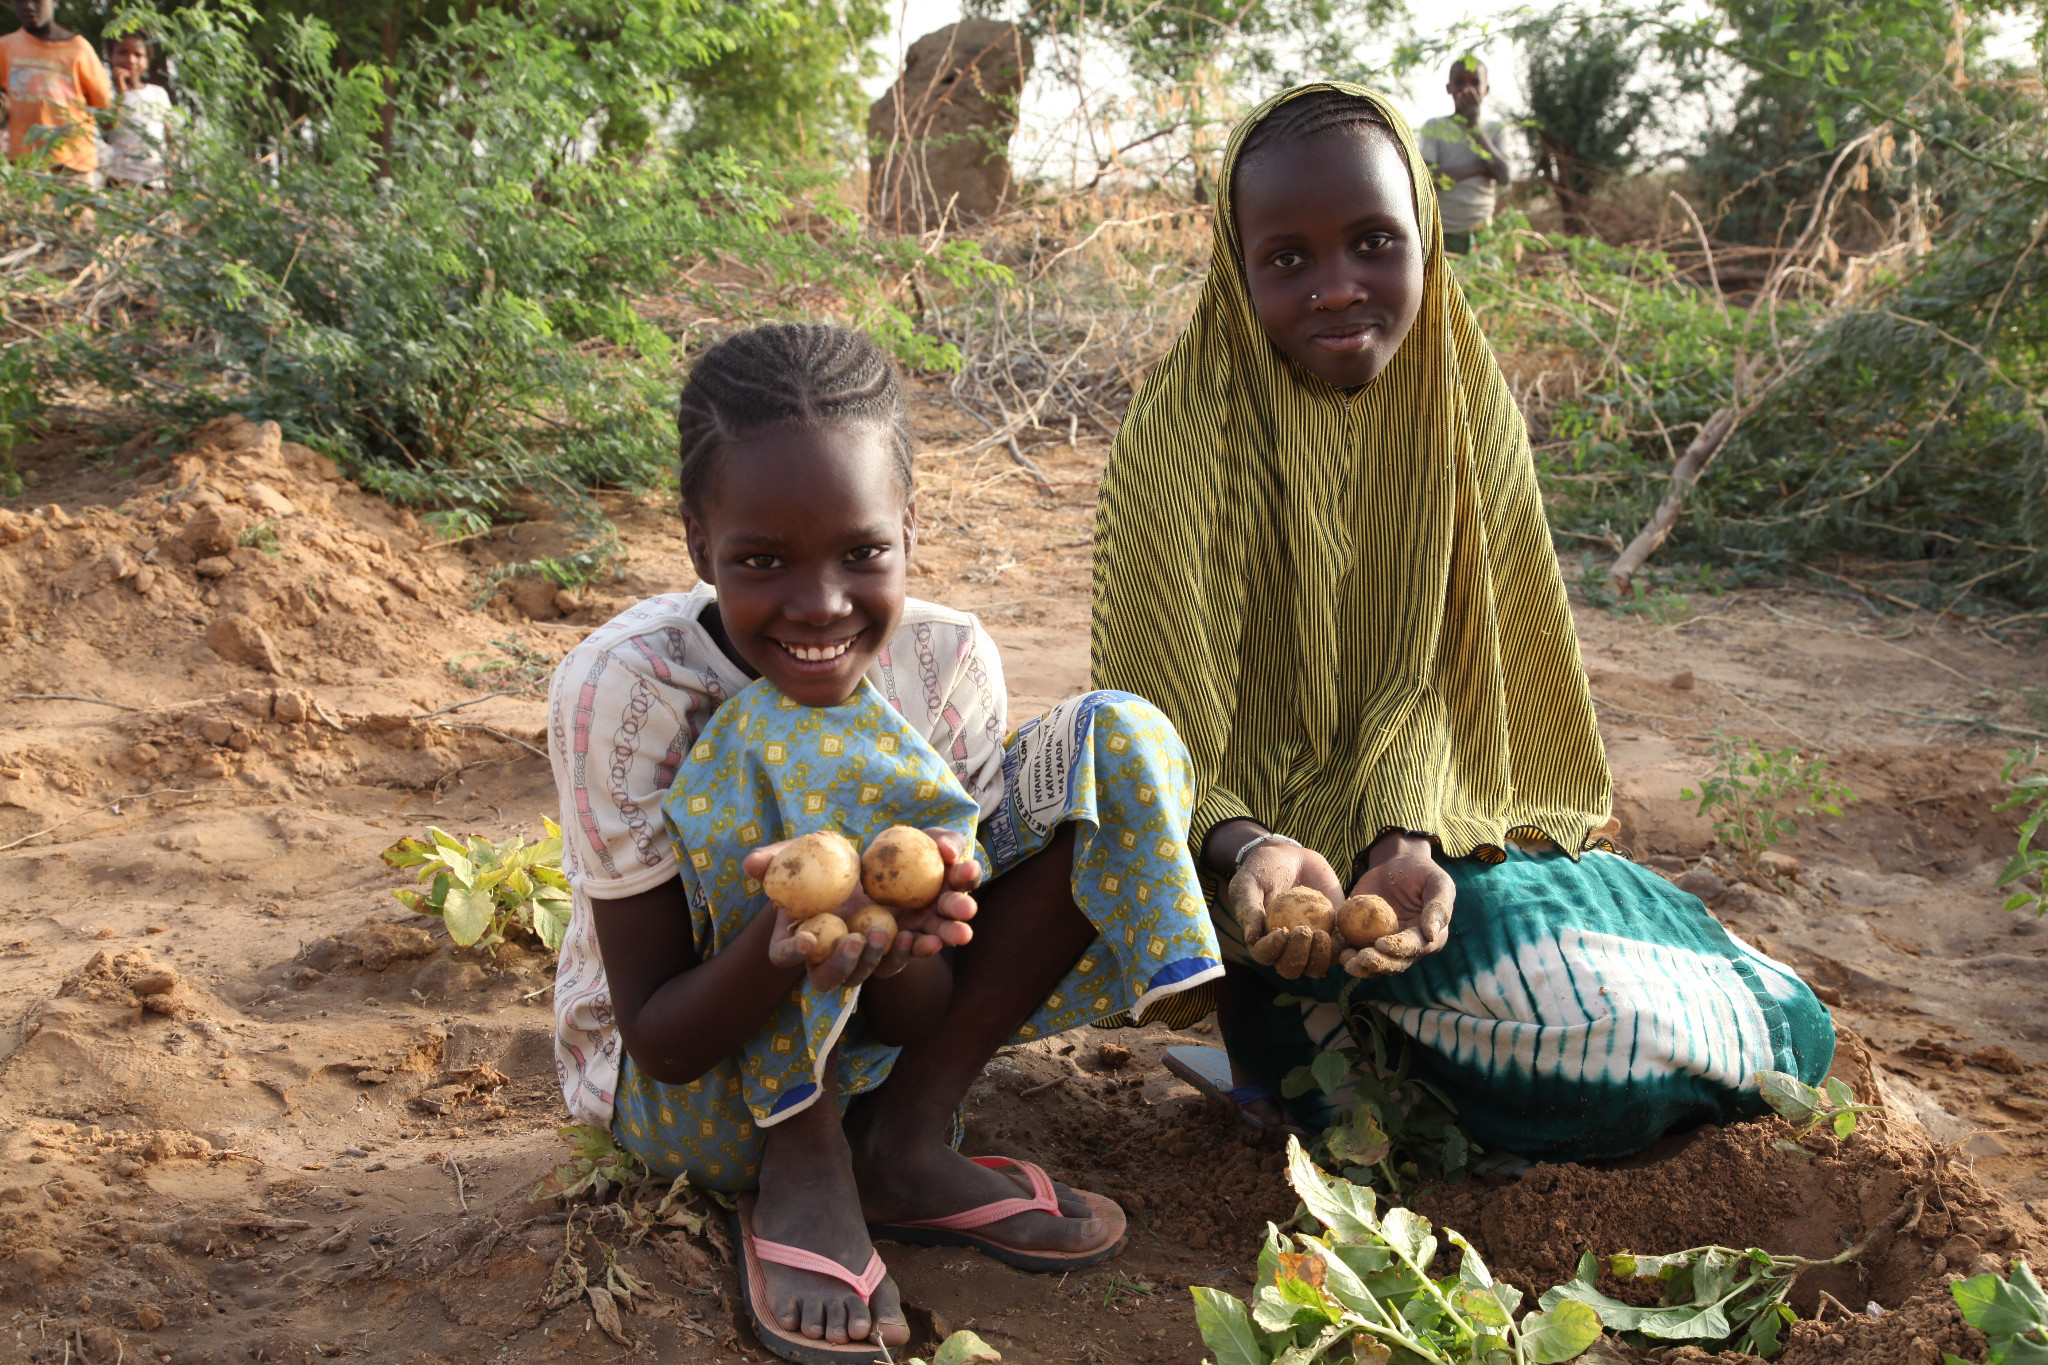 Photo: Schoolgirls show off their crop of potatoes harvested from a Plan-funded school garden in Tillaberi District, Niger. Plan provided the fence, fertilizer, seeds, the water pump and training on gardening. They are now expecting 400kg of produce from the garden.